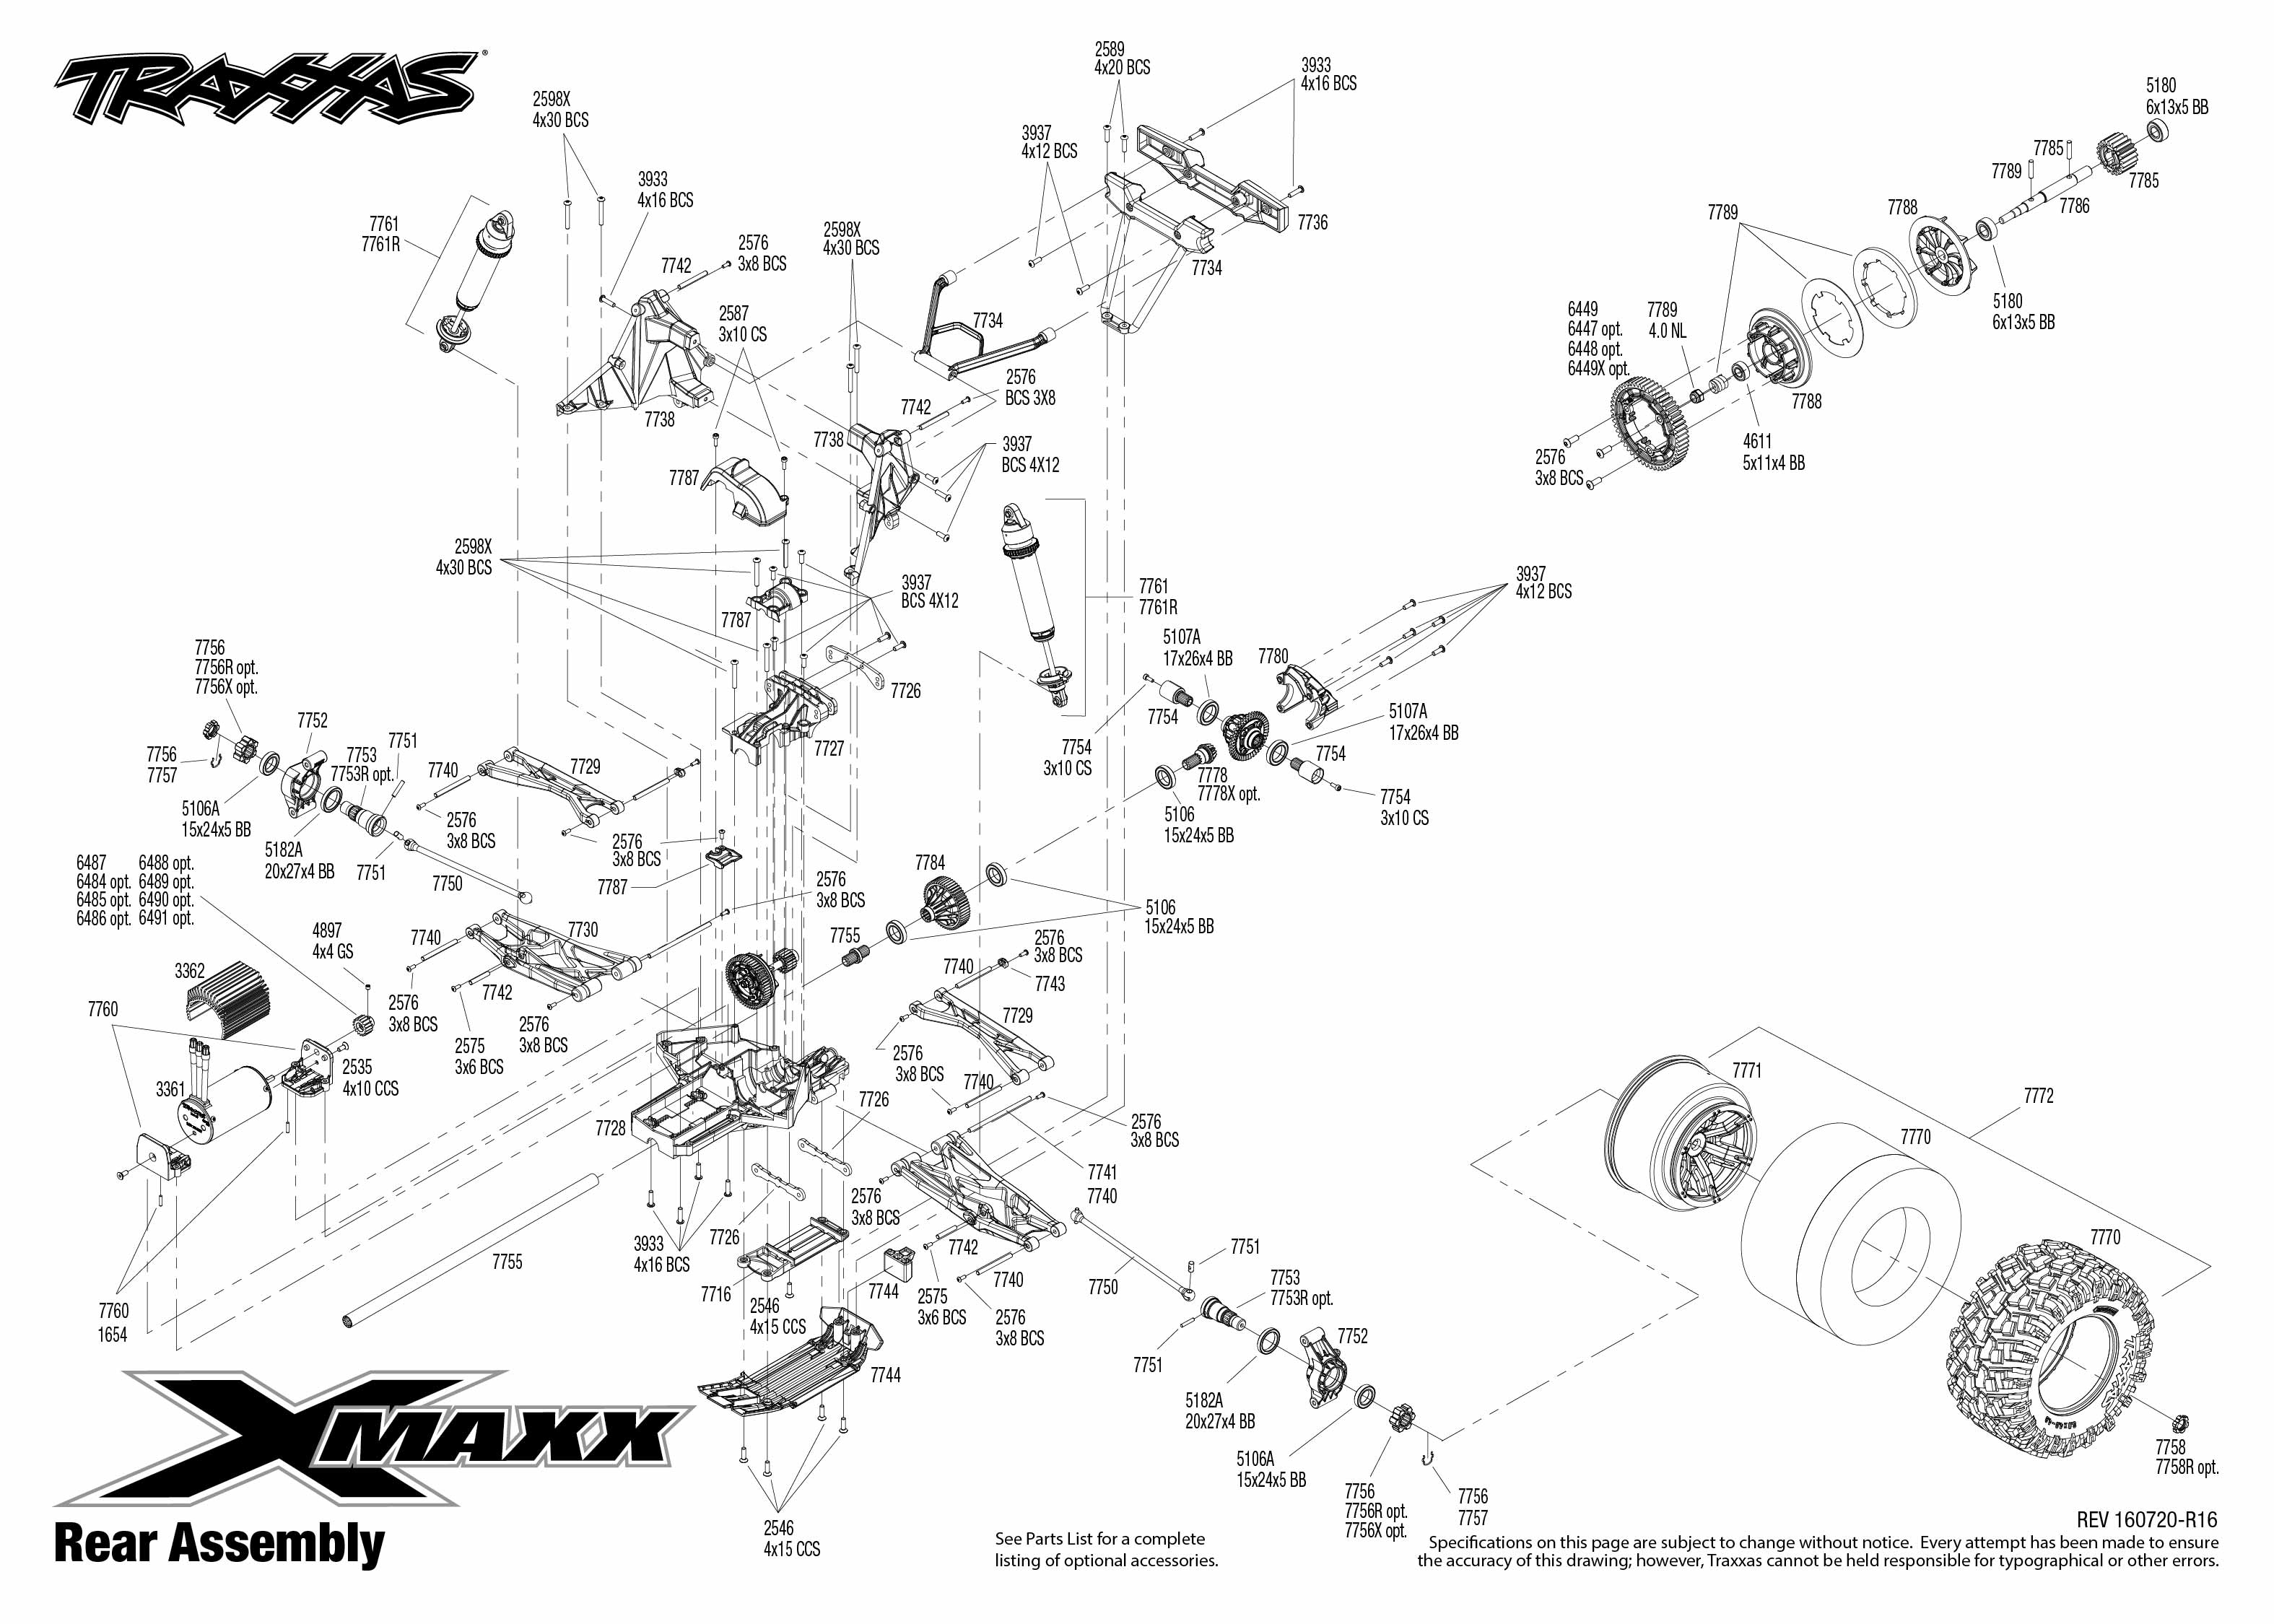 traxxas t maxx 2 5 transmission diagram b tree index in oracle with exploded view x 1 4wd tqi brushless tsm